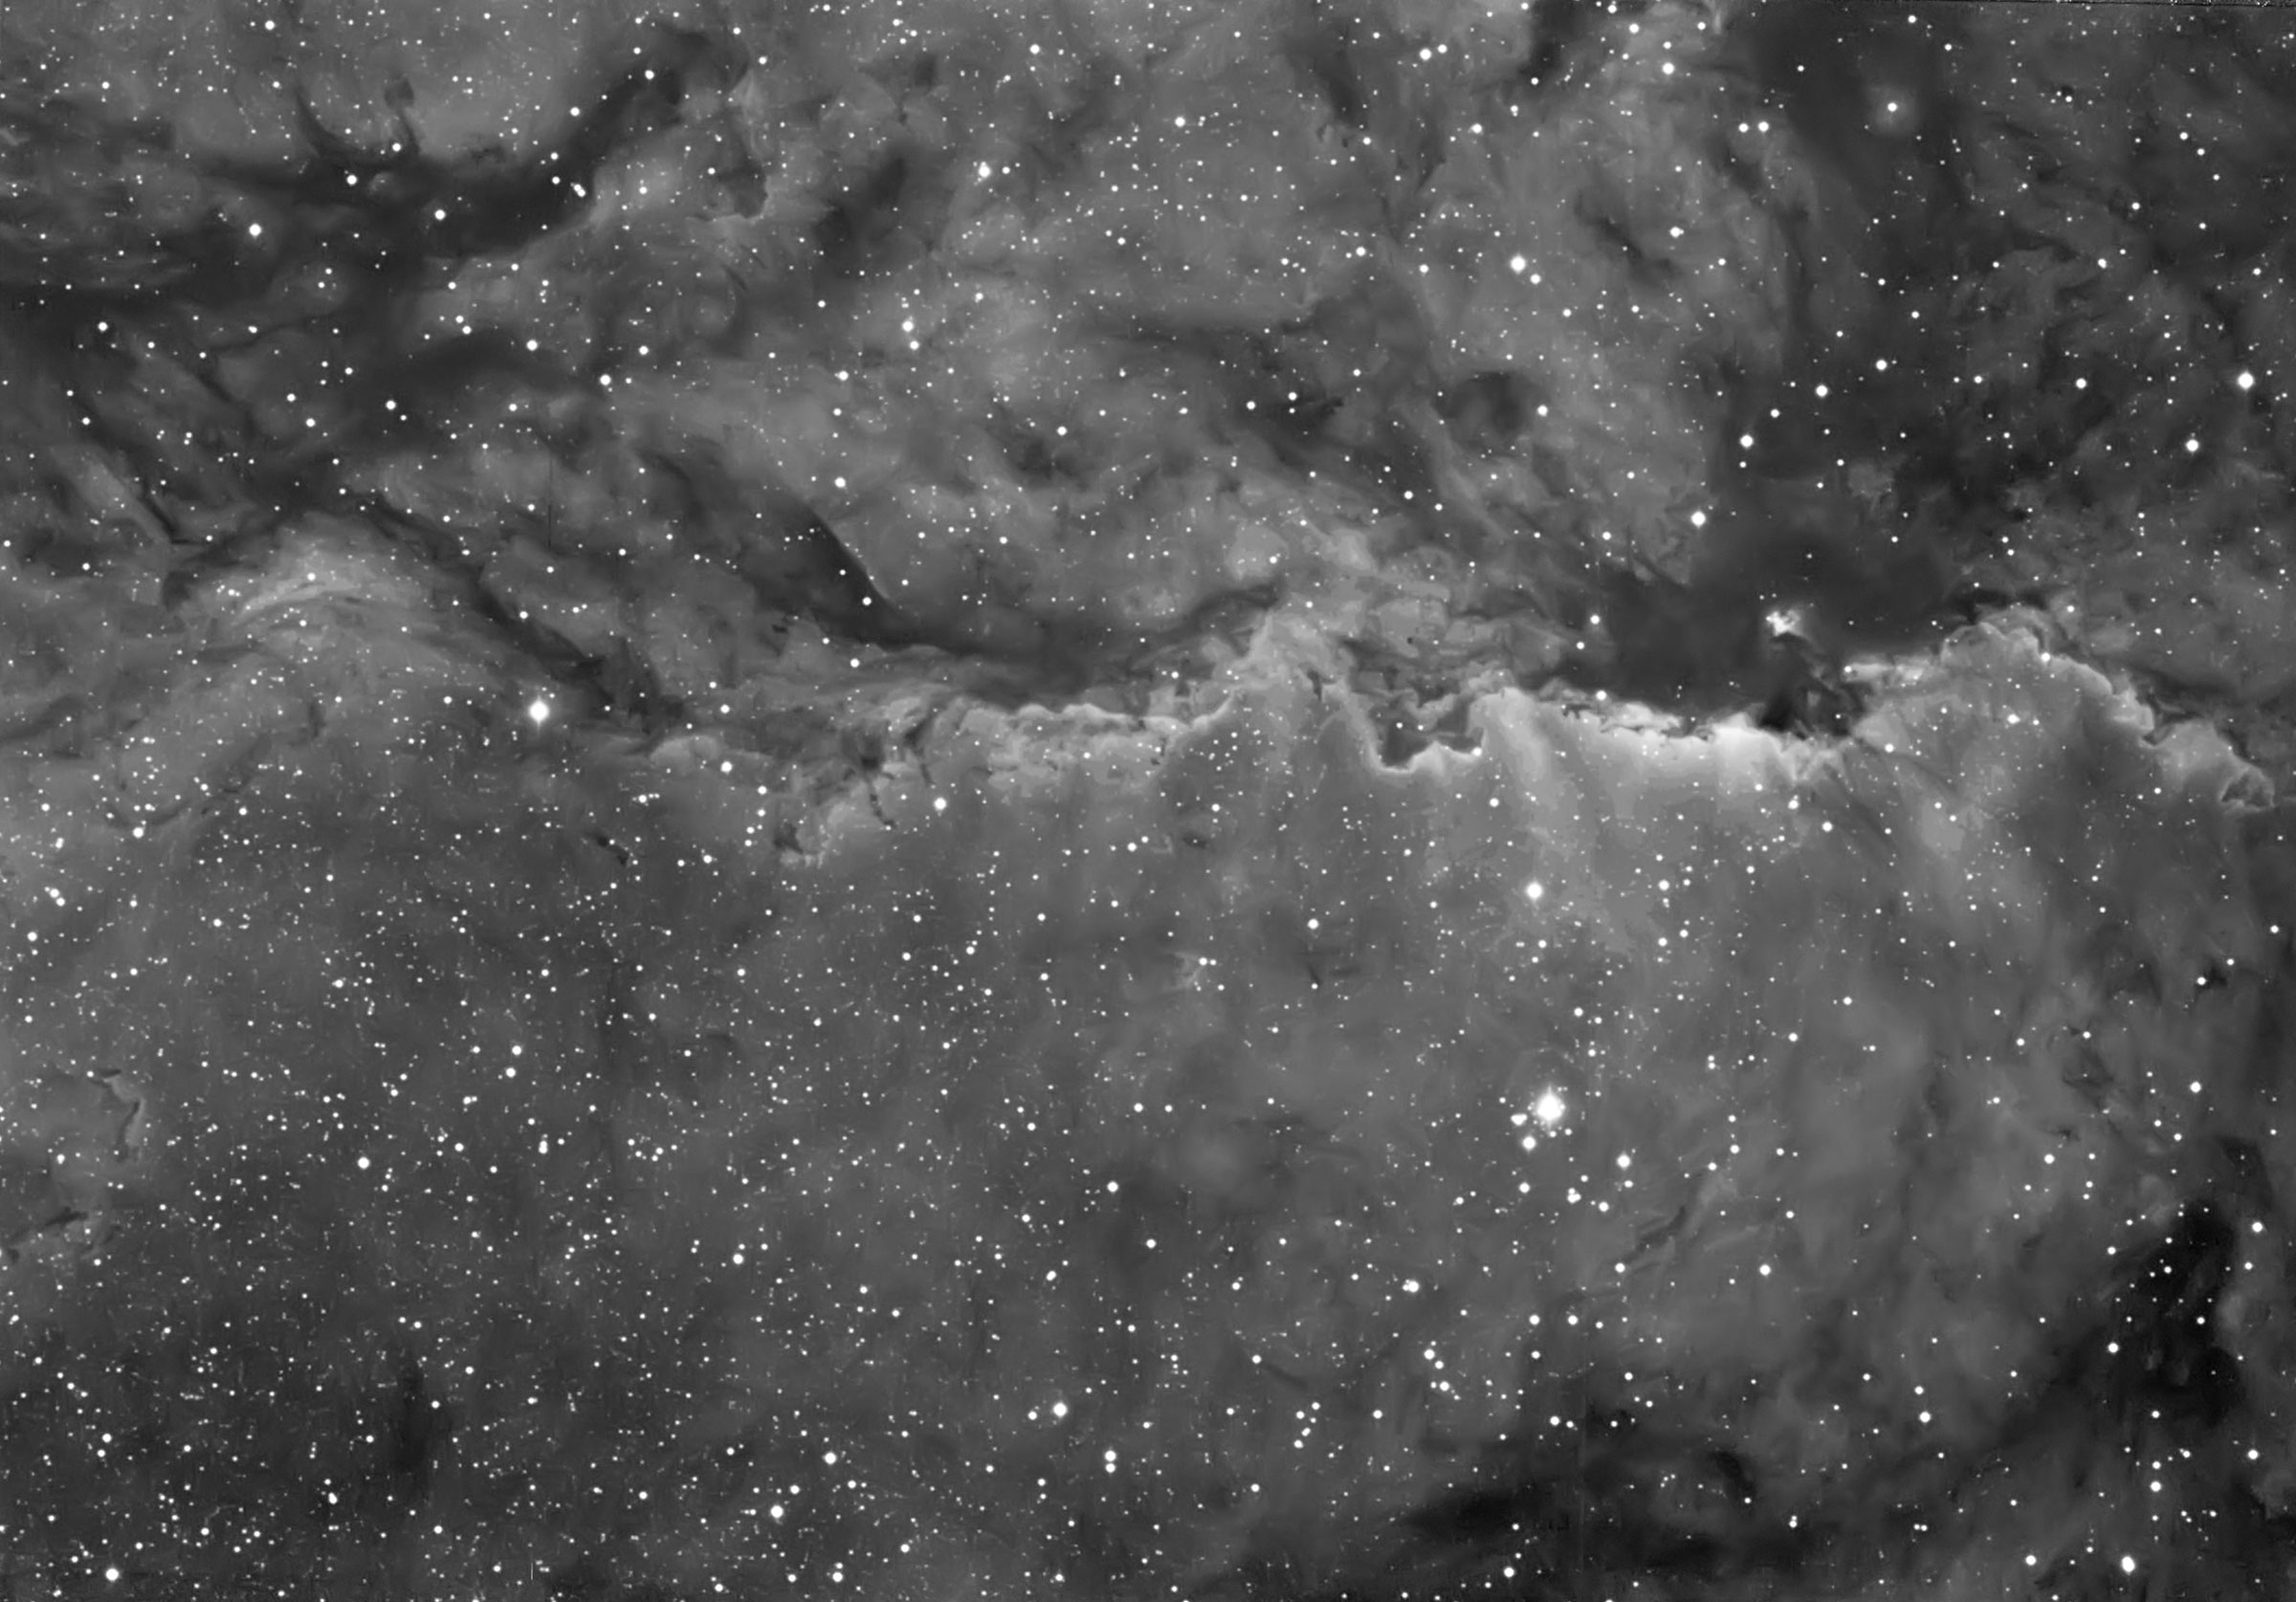 HA acquisition of NGC 6188 with William Optics GTF102 - Queensland Astrofest 2014